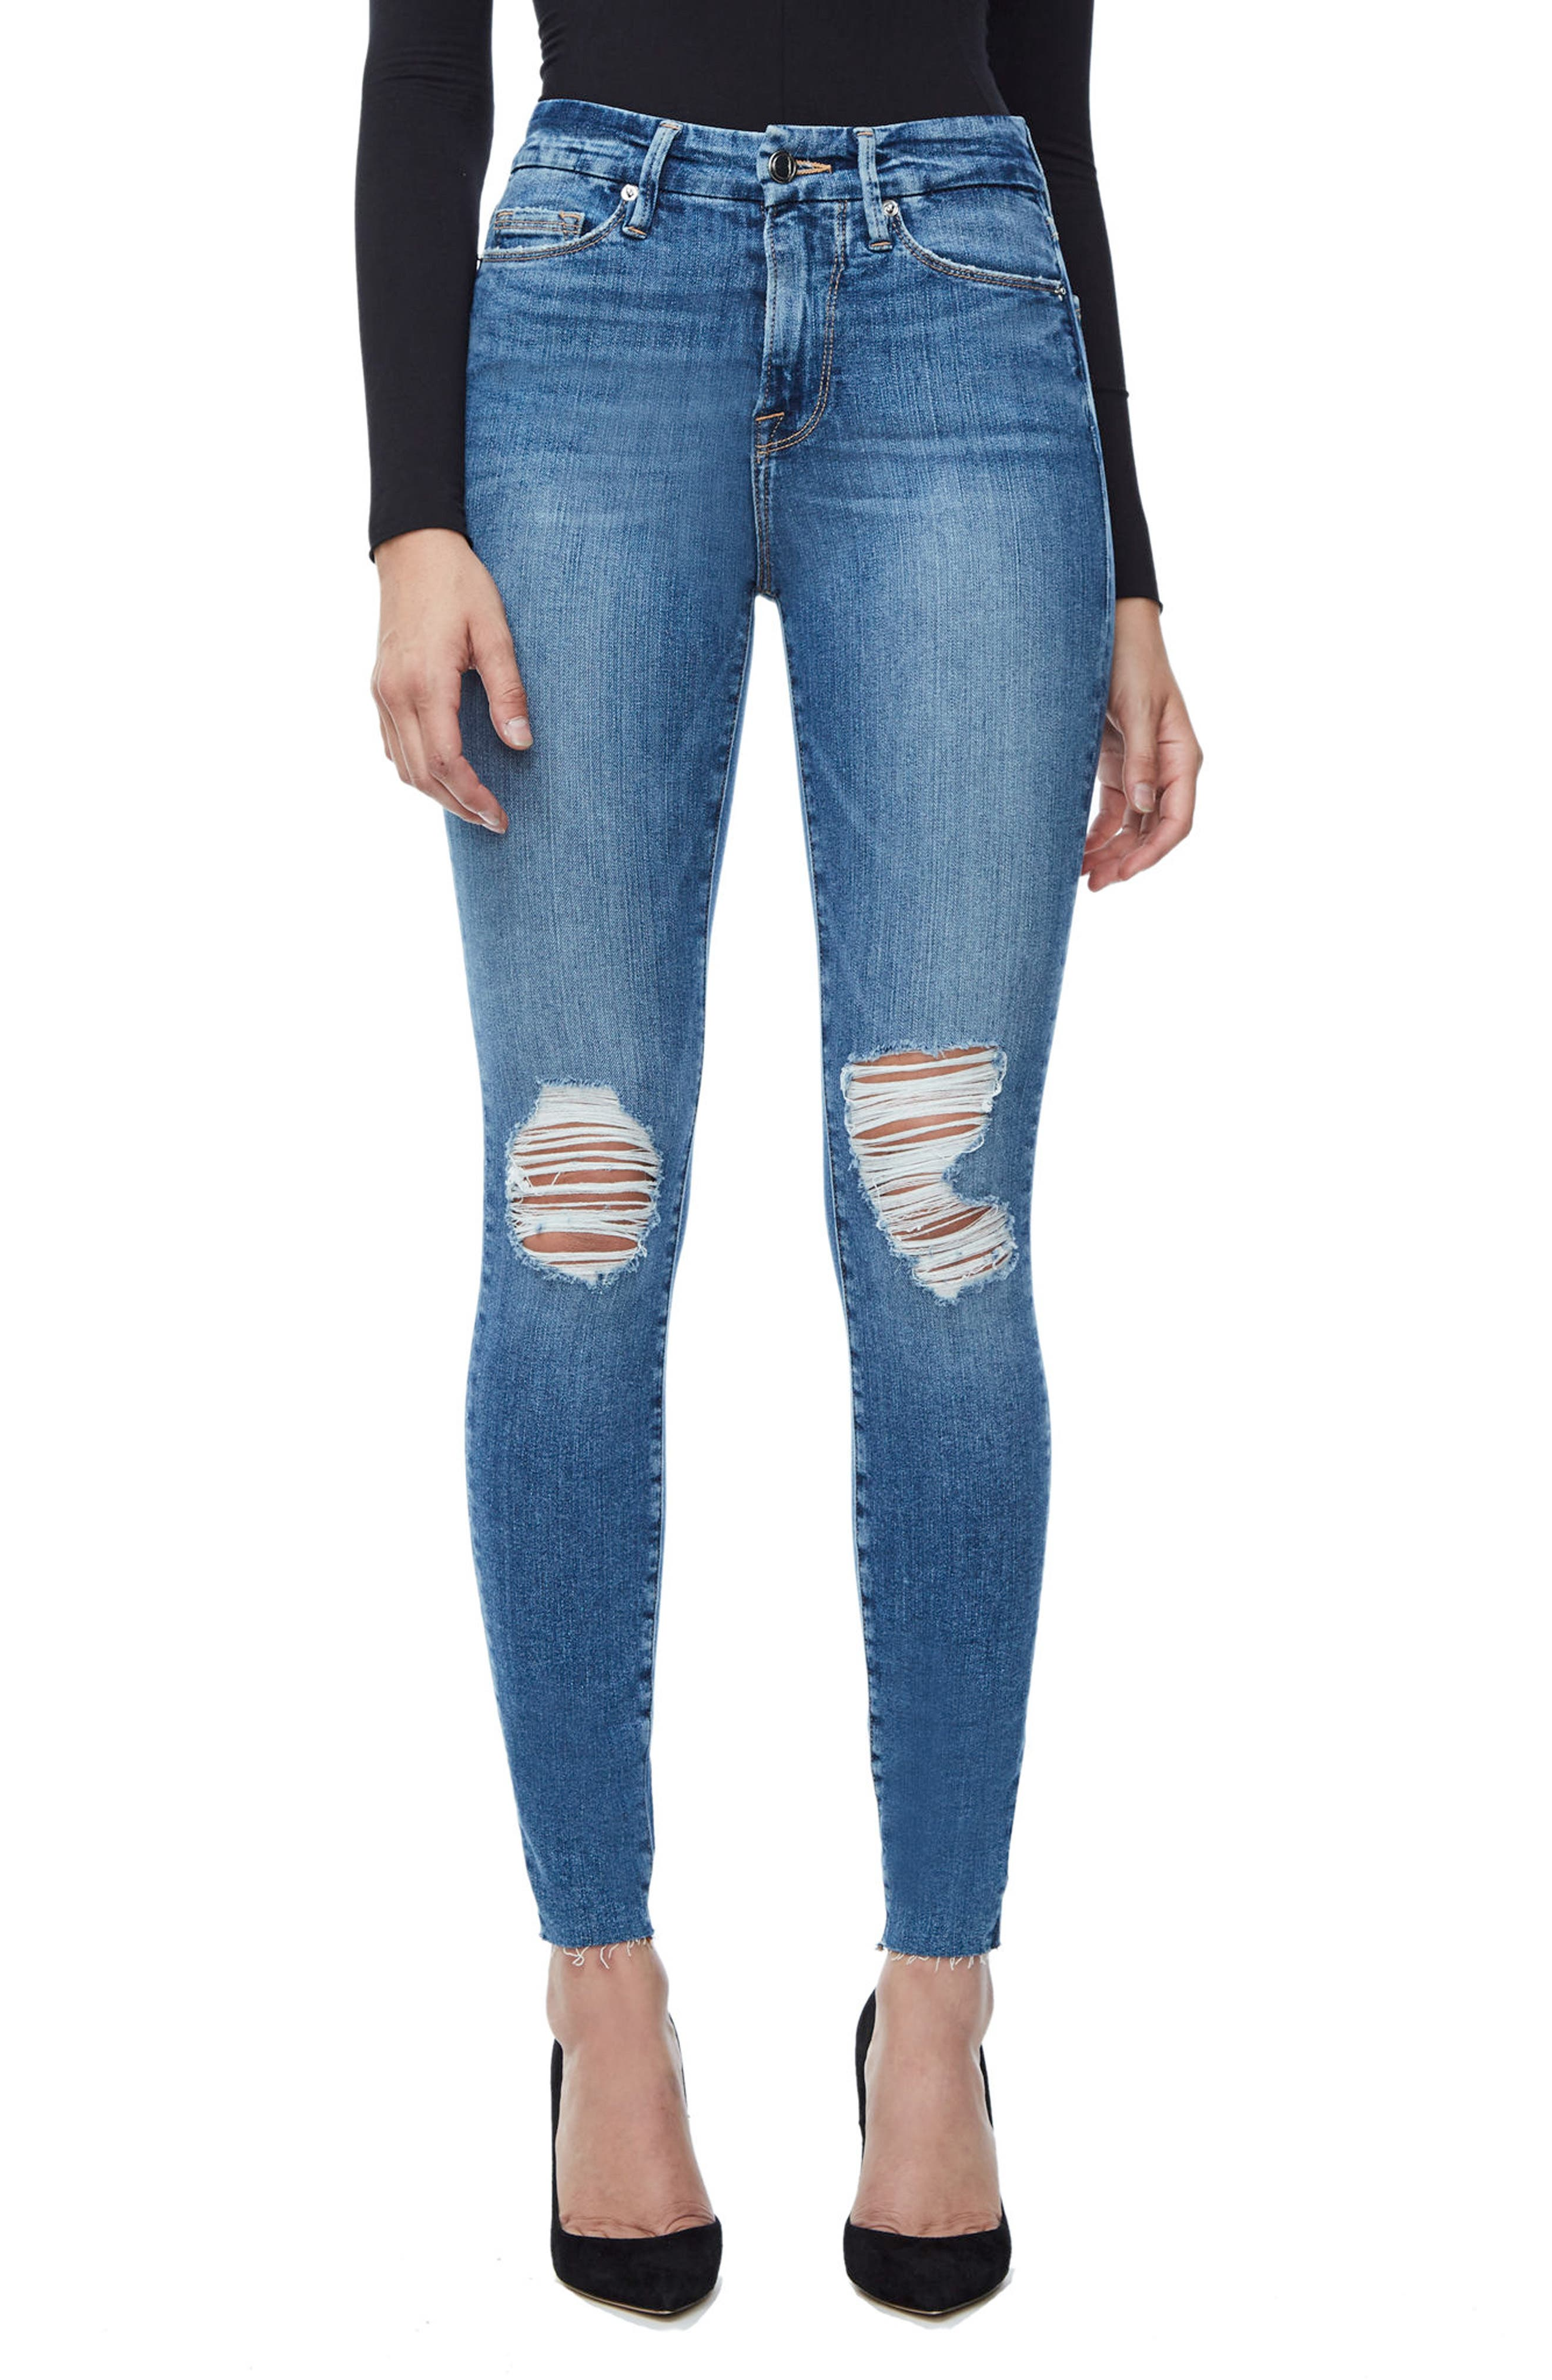 GOOD AMERICAN, Good Waist Raw Edge Skinny Jeans, Main thumbnail 1, color, BLUE 092